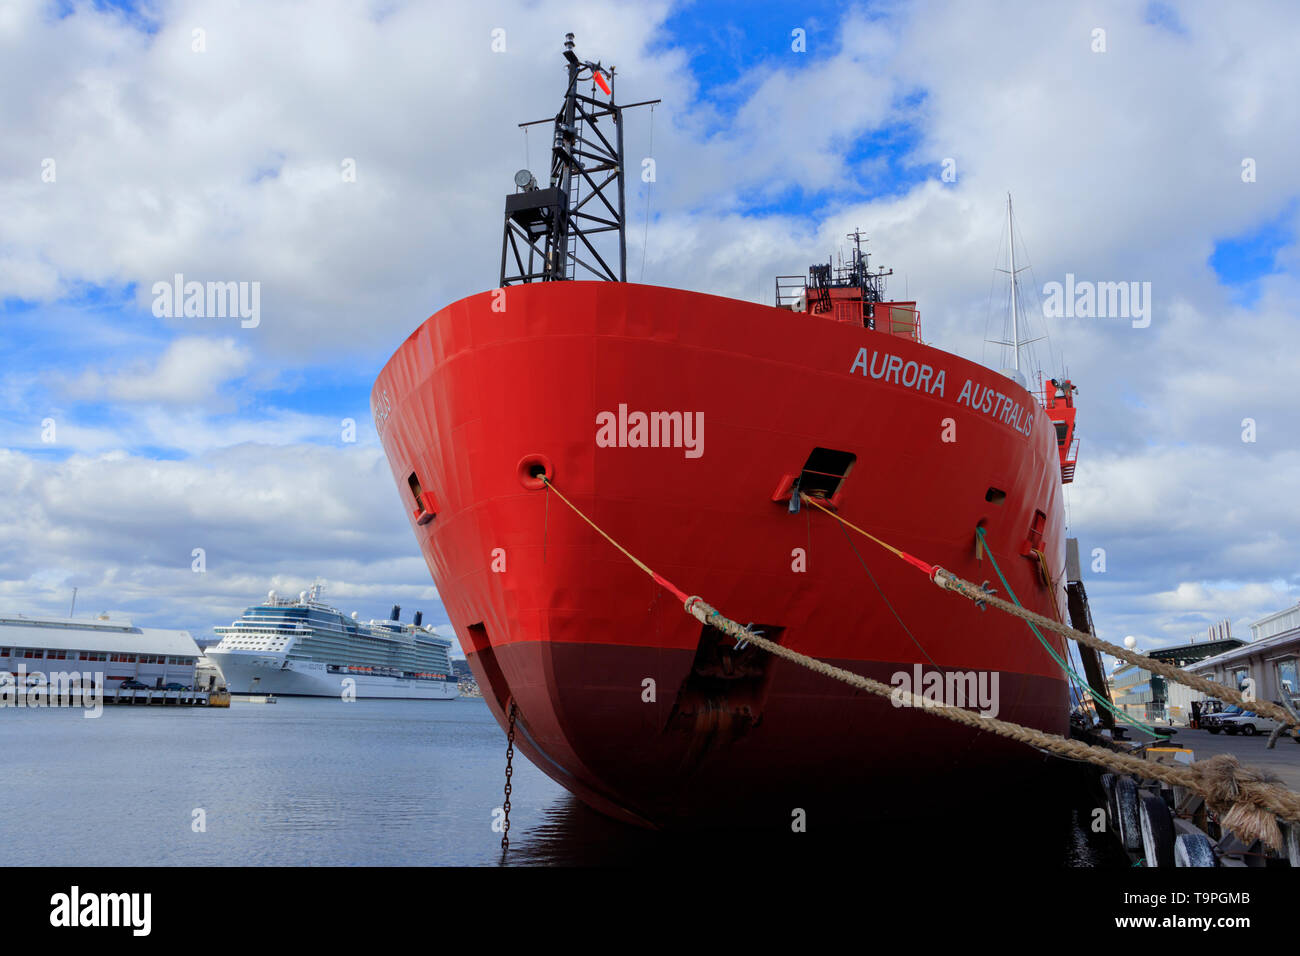 The Aurora Australis is the Australian Government's Antarctic research and resupply ship which operates out of the port city of Hobart in Tasmania Aus - Stock Image